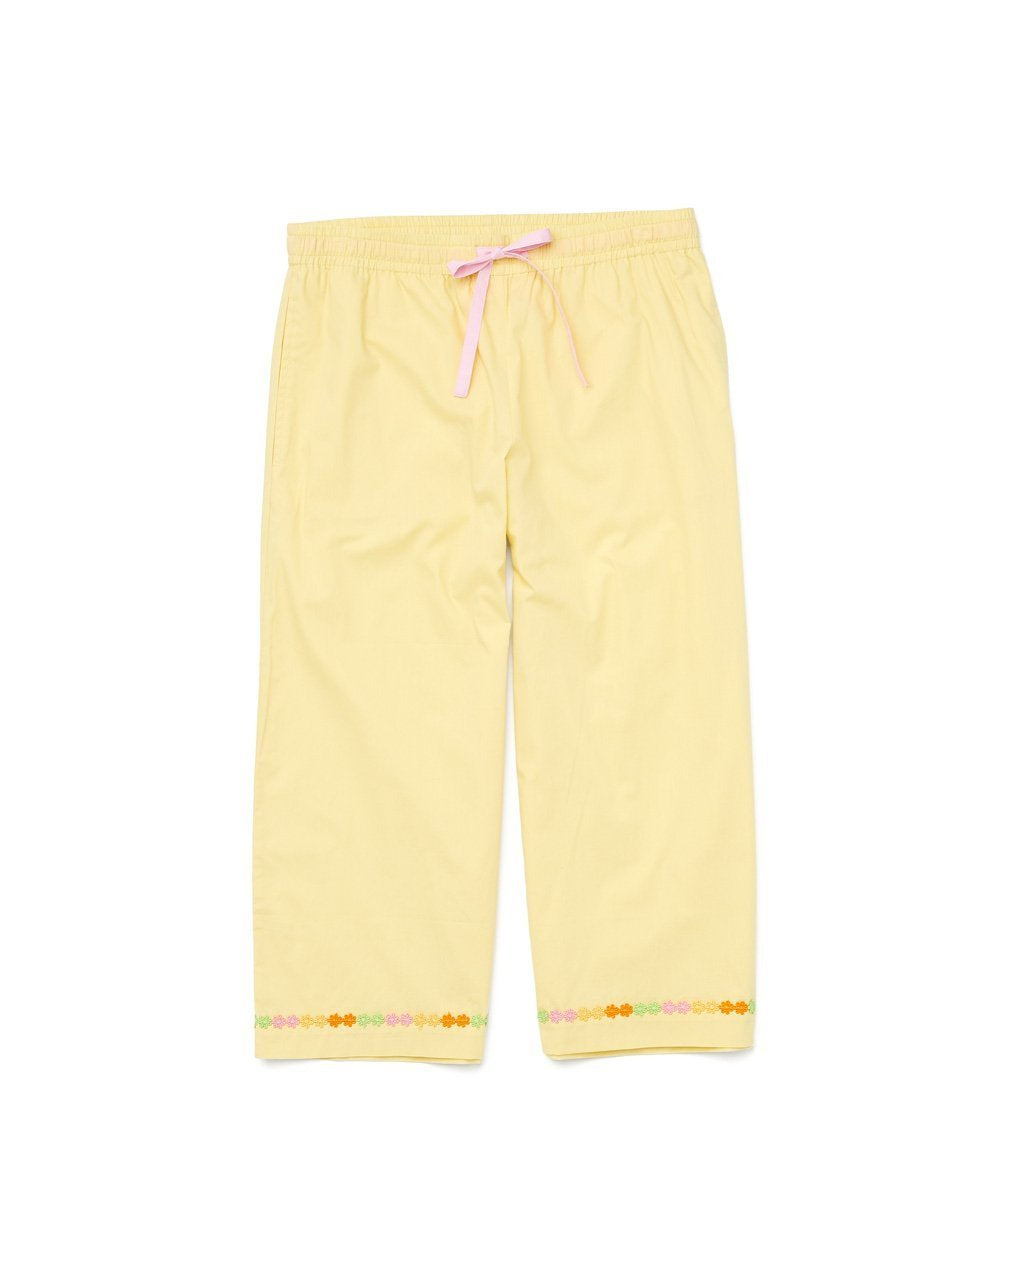 yellow cropped leisure pants with daisy chain accent at the bottom of the pant legs